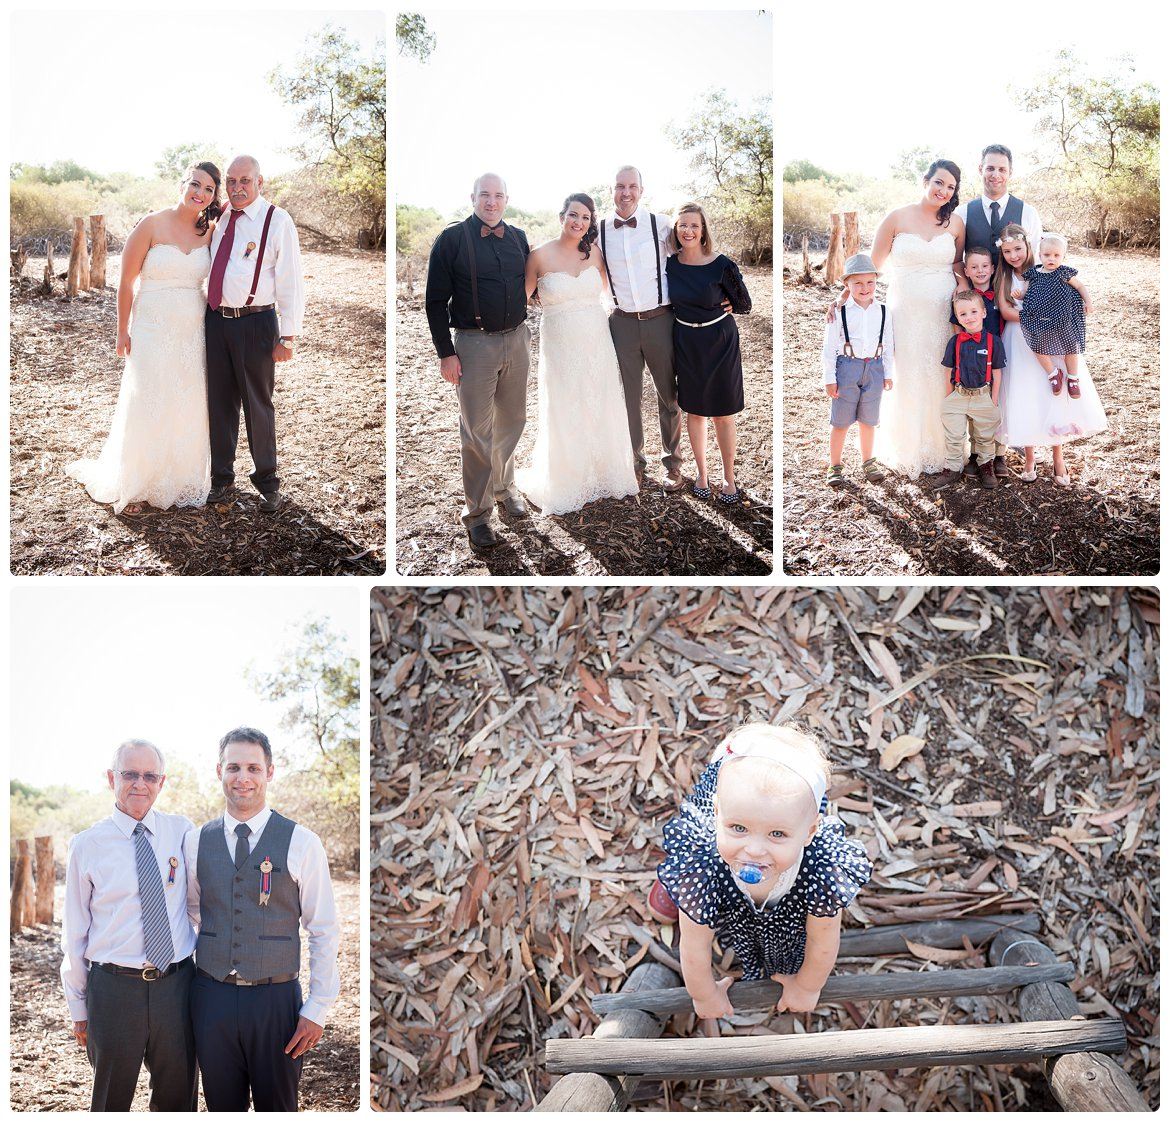 cape-town-wedding-photographer-schaftplaas-langebaan-0018